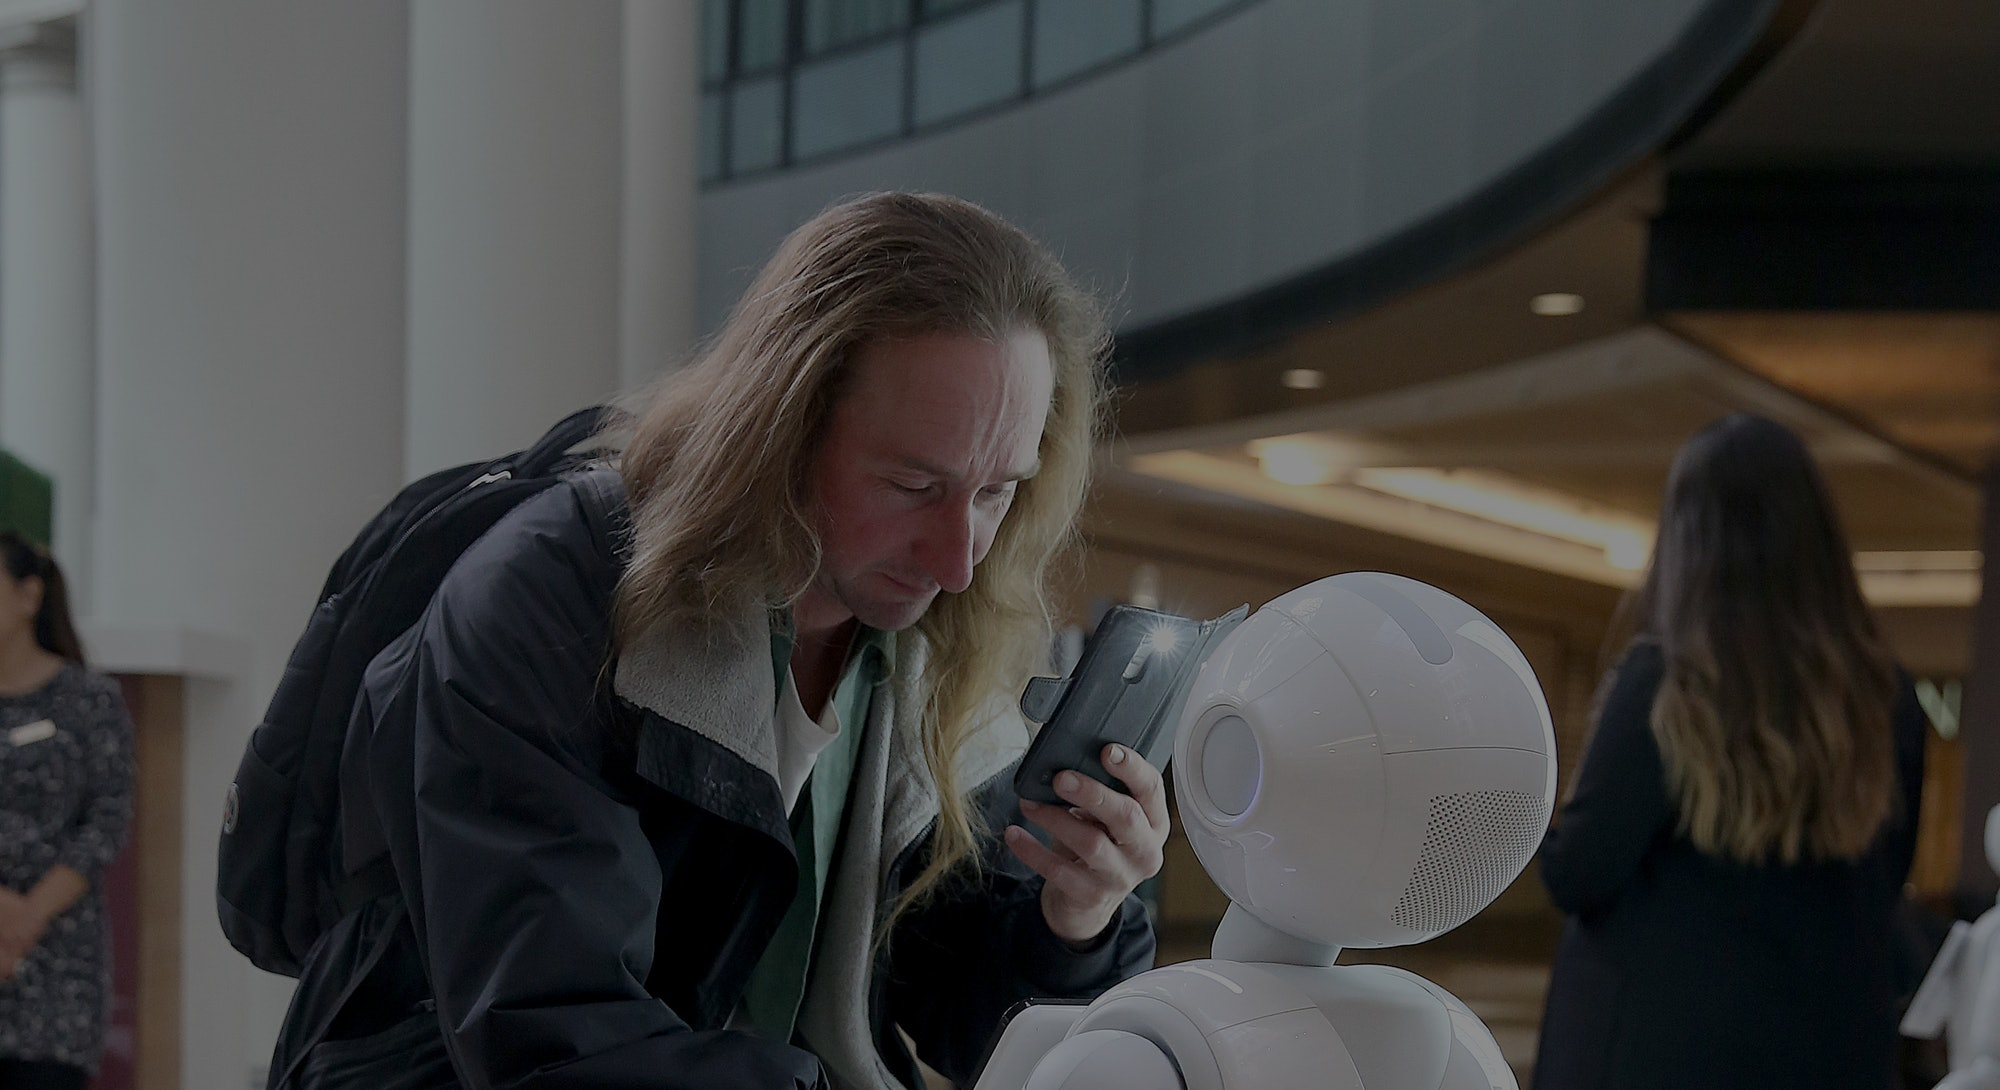 Paul Bartholomew interacts with Pepper, a robot by SoftBank Robotics, which will greet and play game...